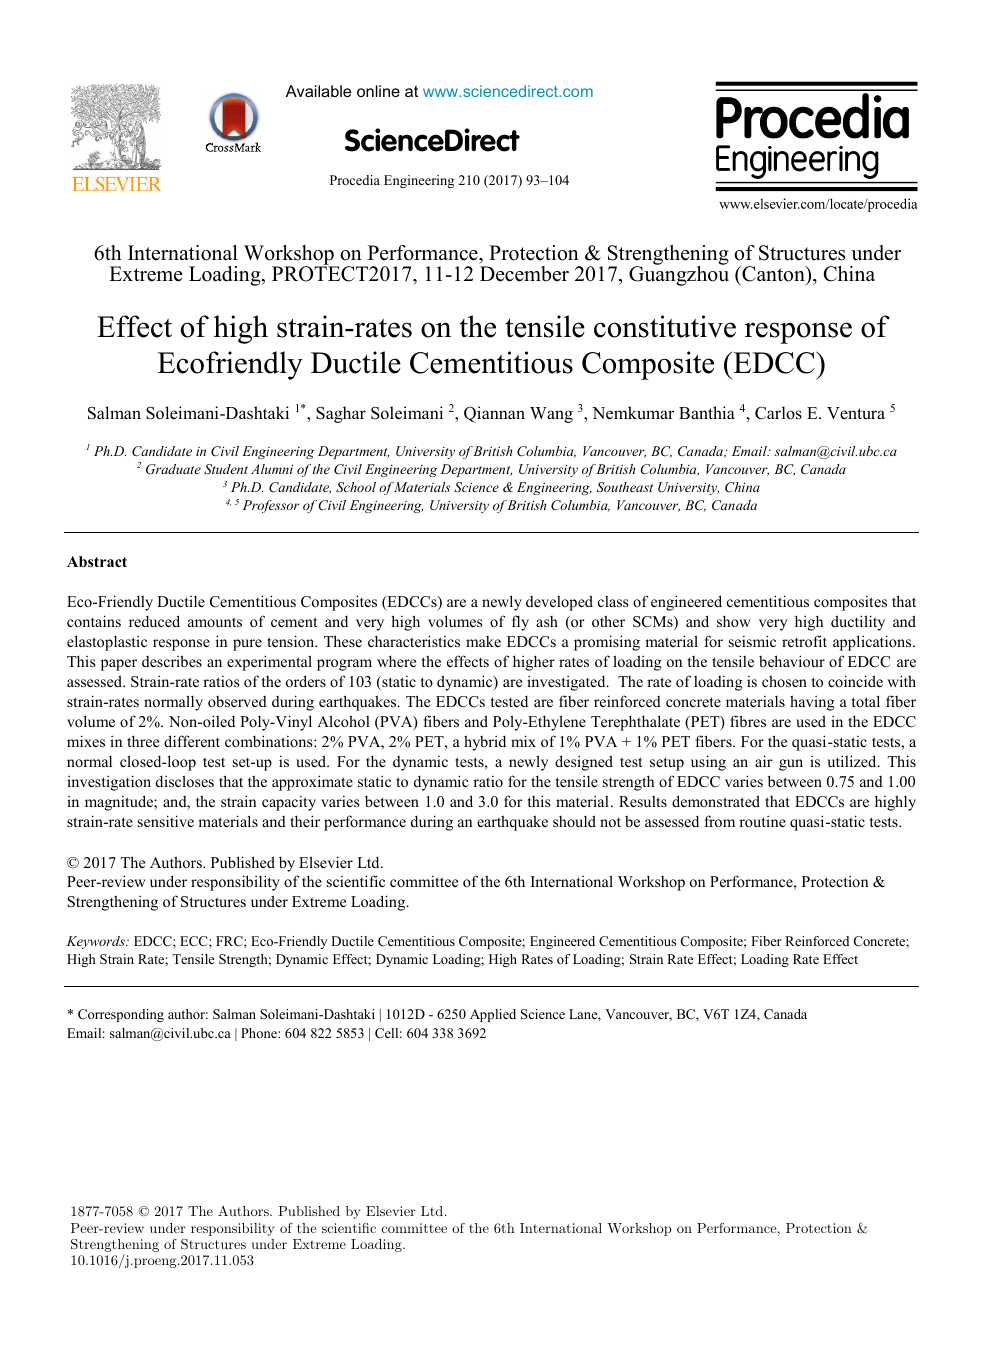 Effect of high strain-rates on the tensile constitutive